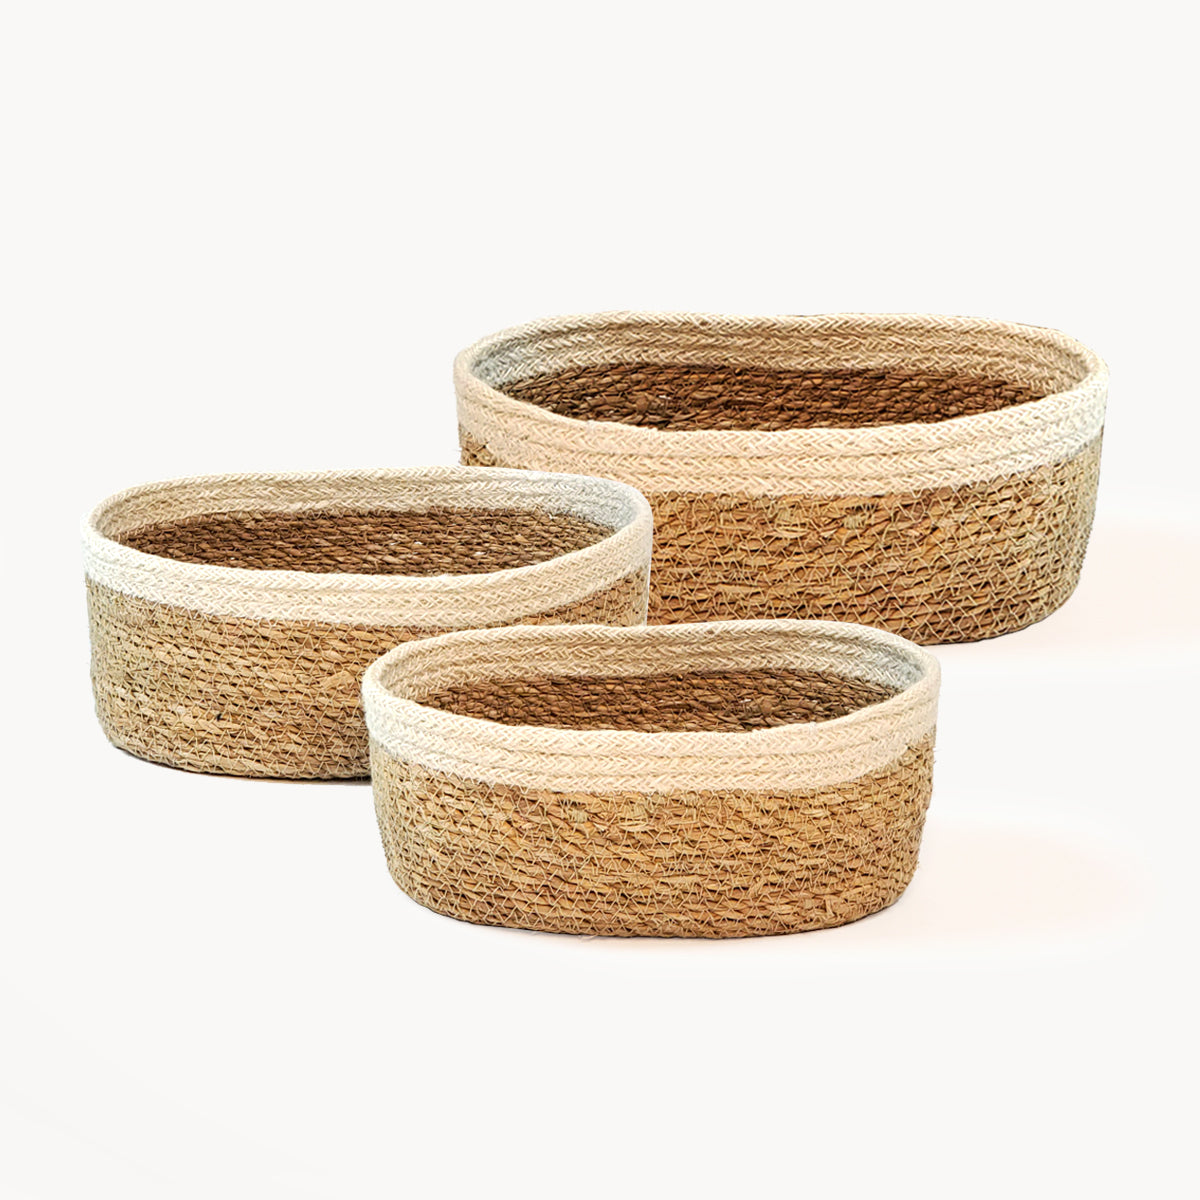 Set of 3 Handwoven Fair Trade Savar Oval Bowls